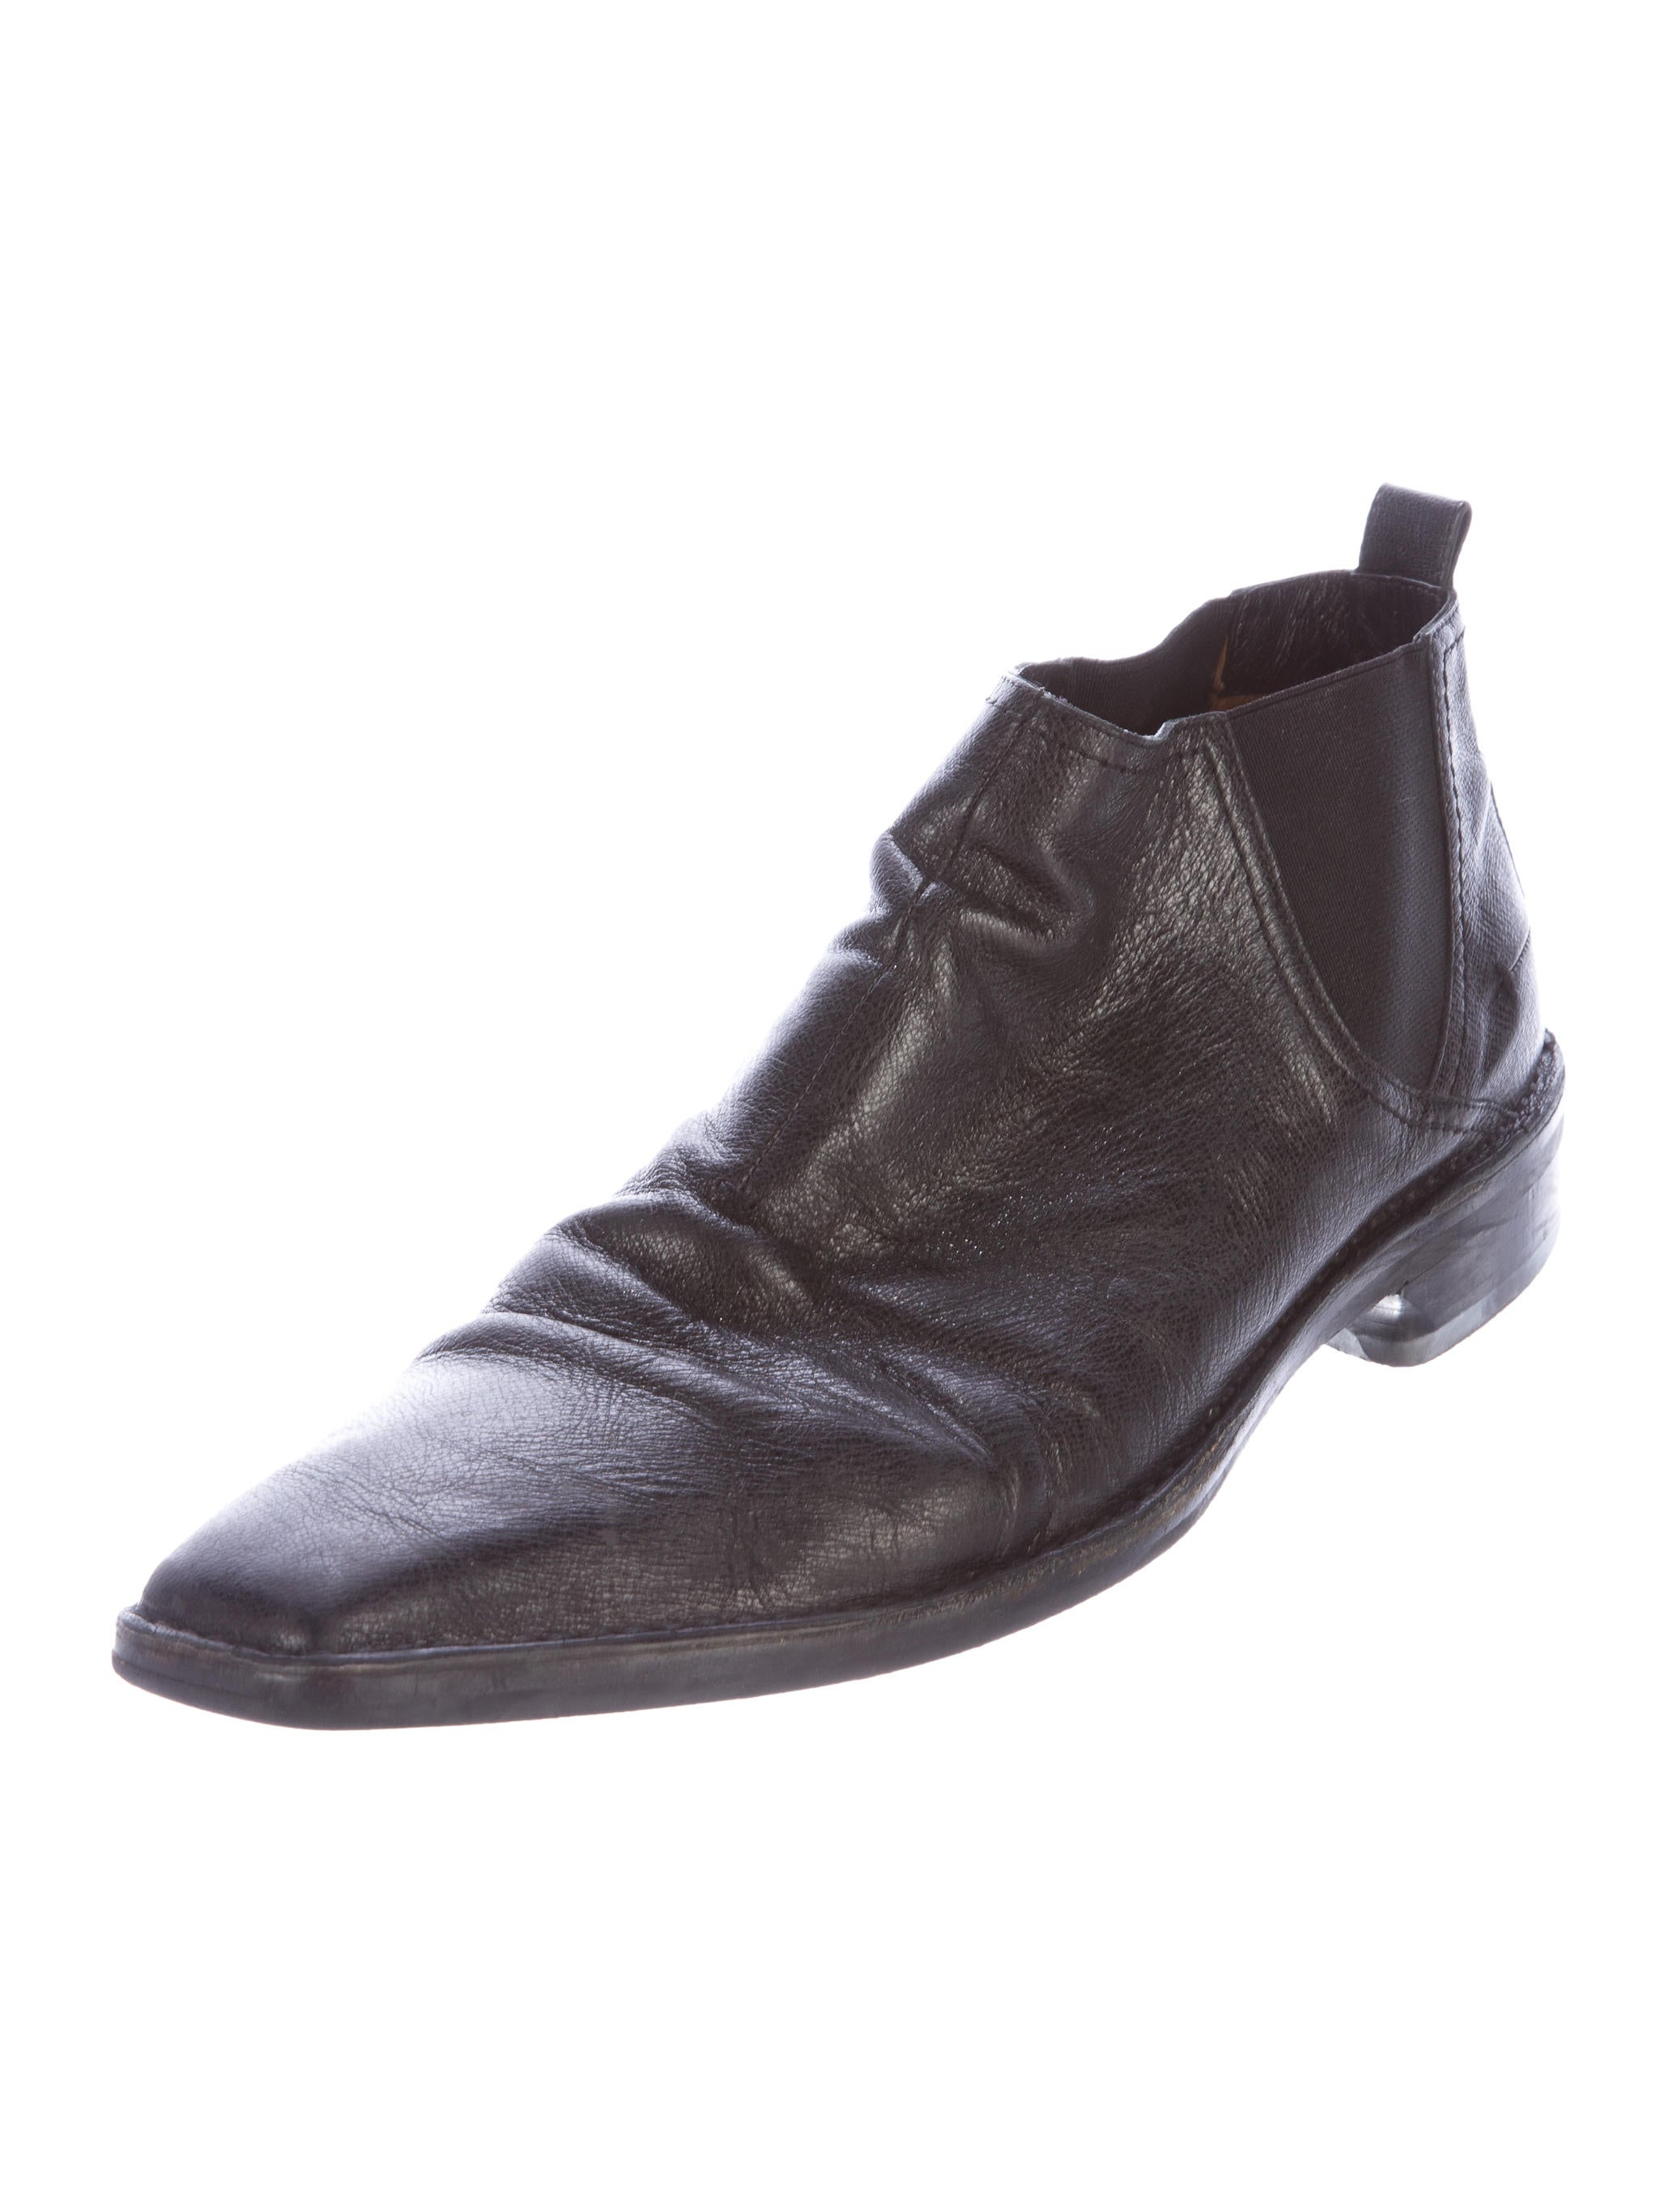 costume national leather ankle boots shoes cot23719